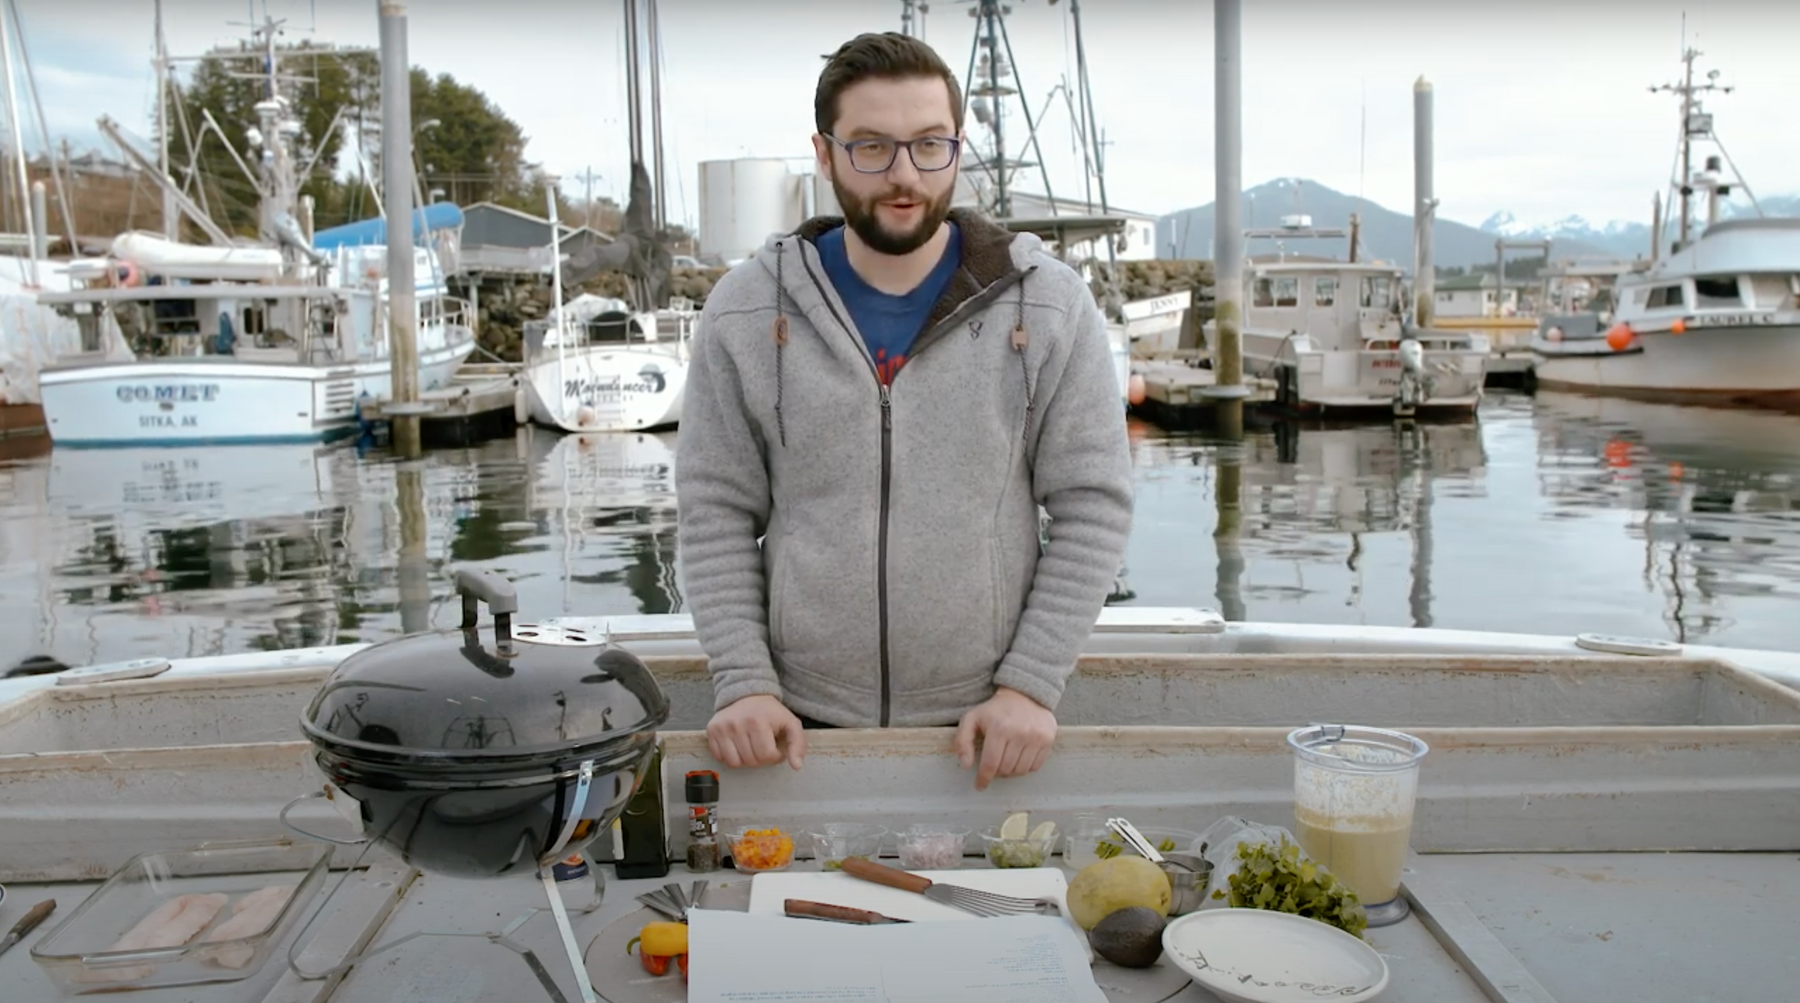 Boat Deck Cookin': Episode #6 Video